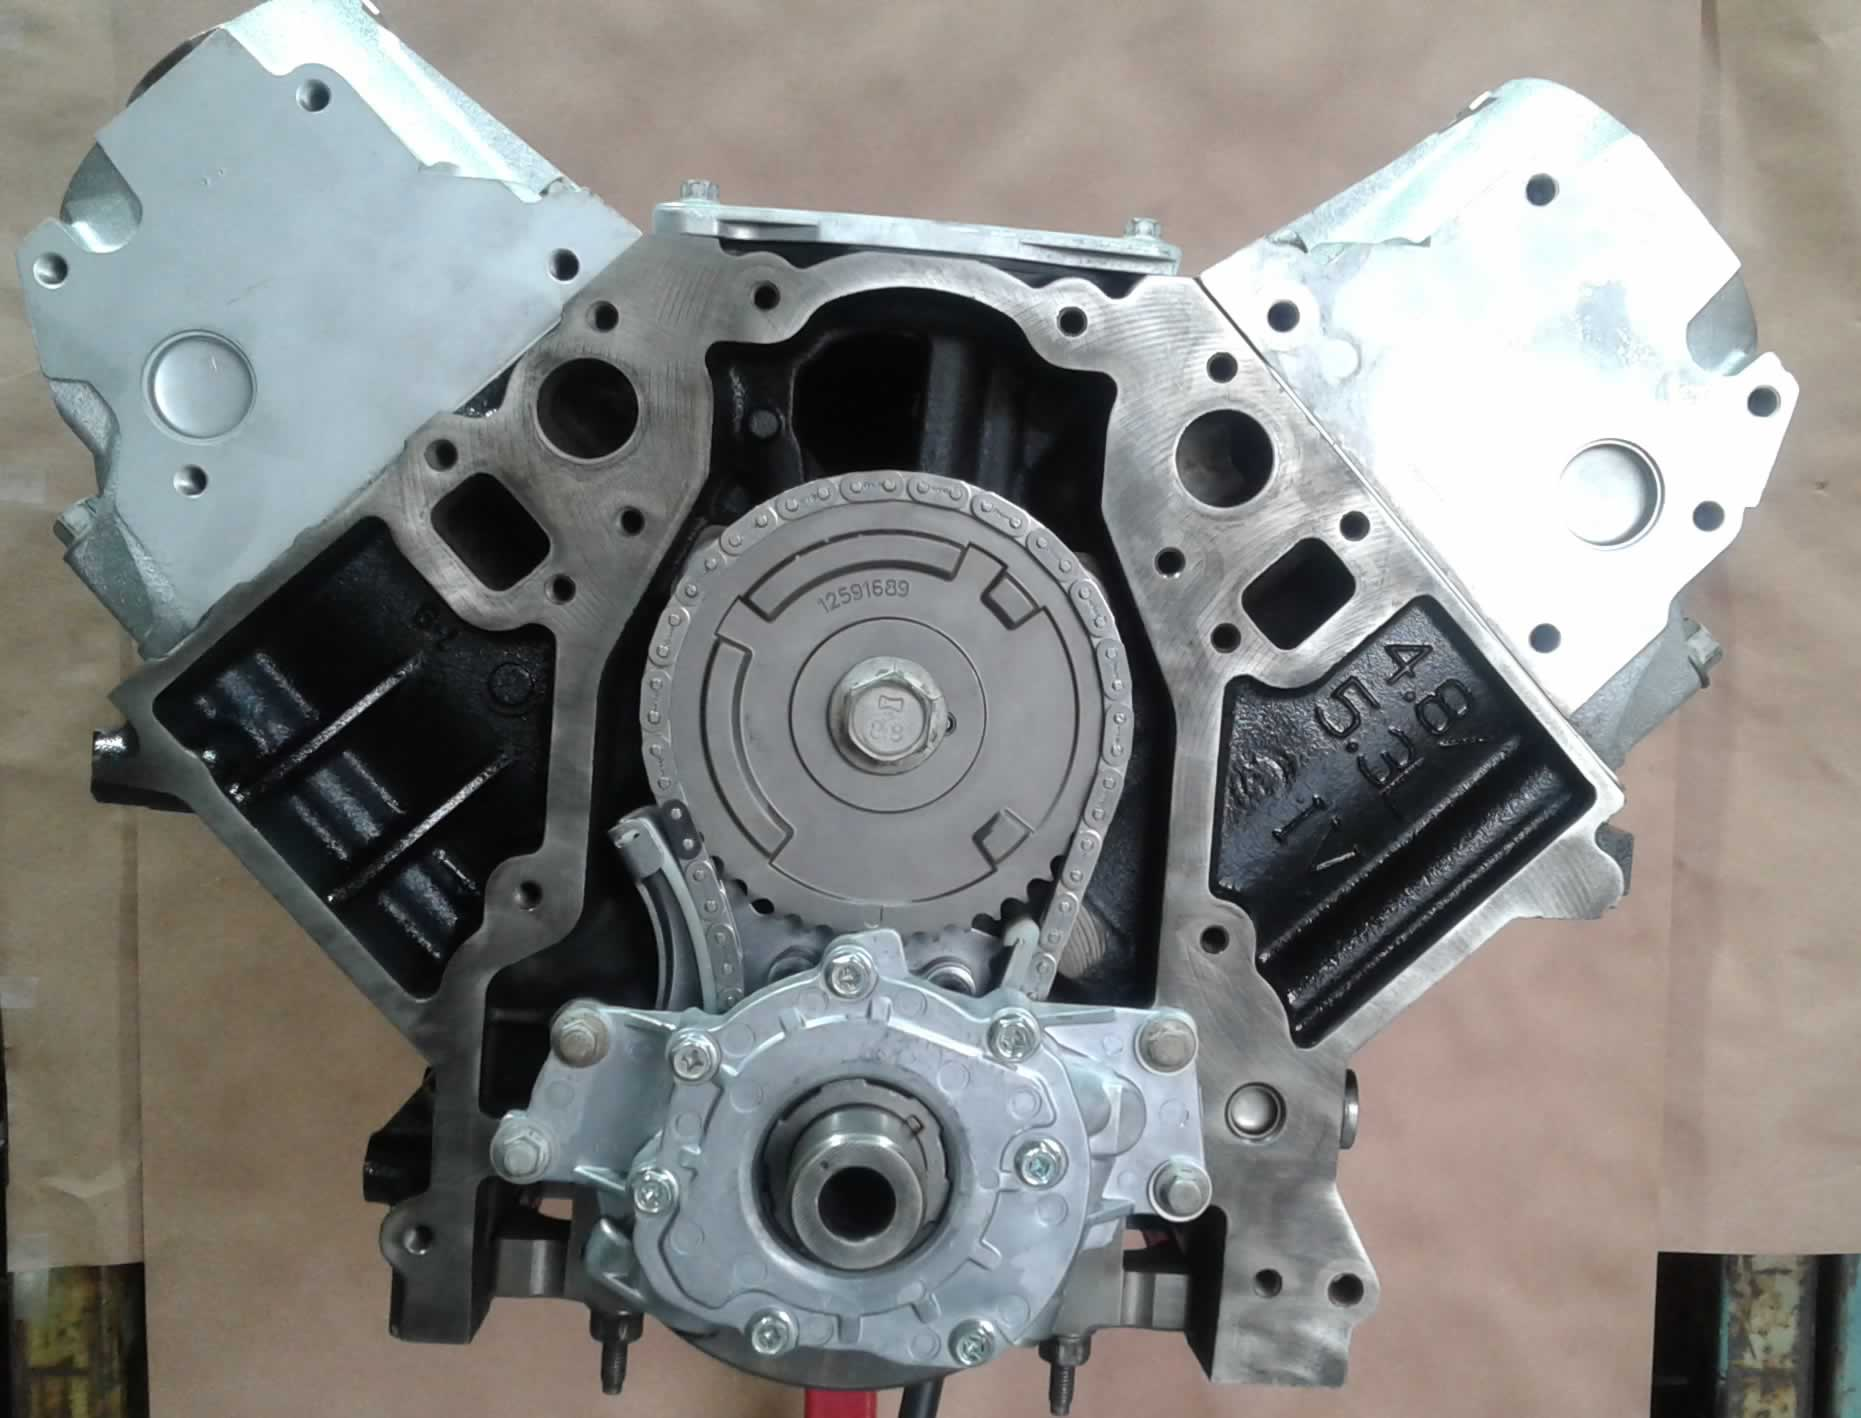 Pictures Of Engines Are For Only Reference Not Actual Product